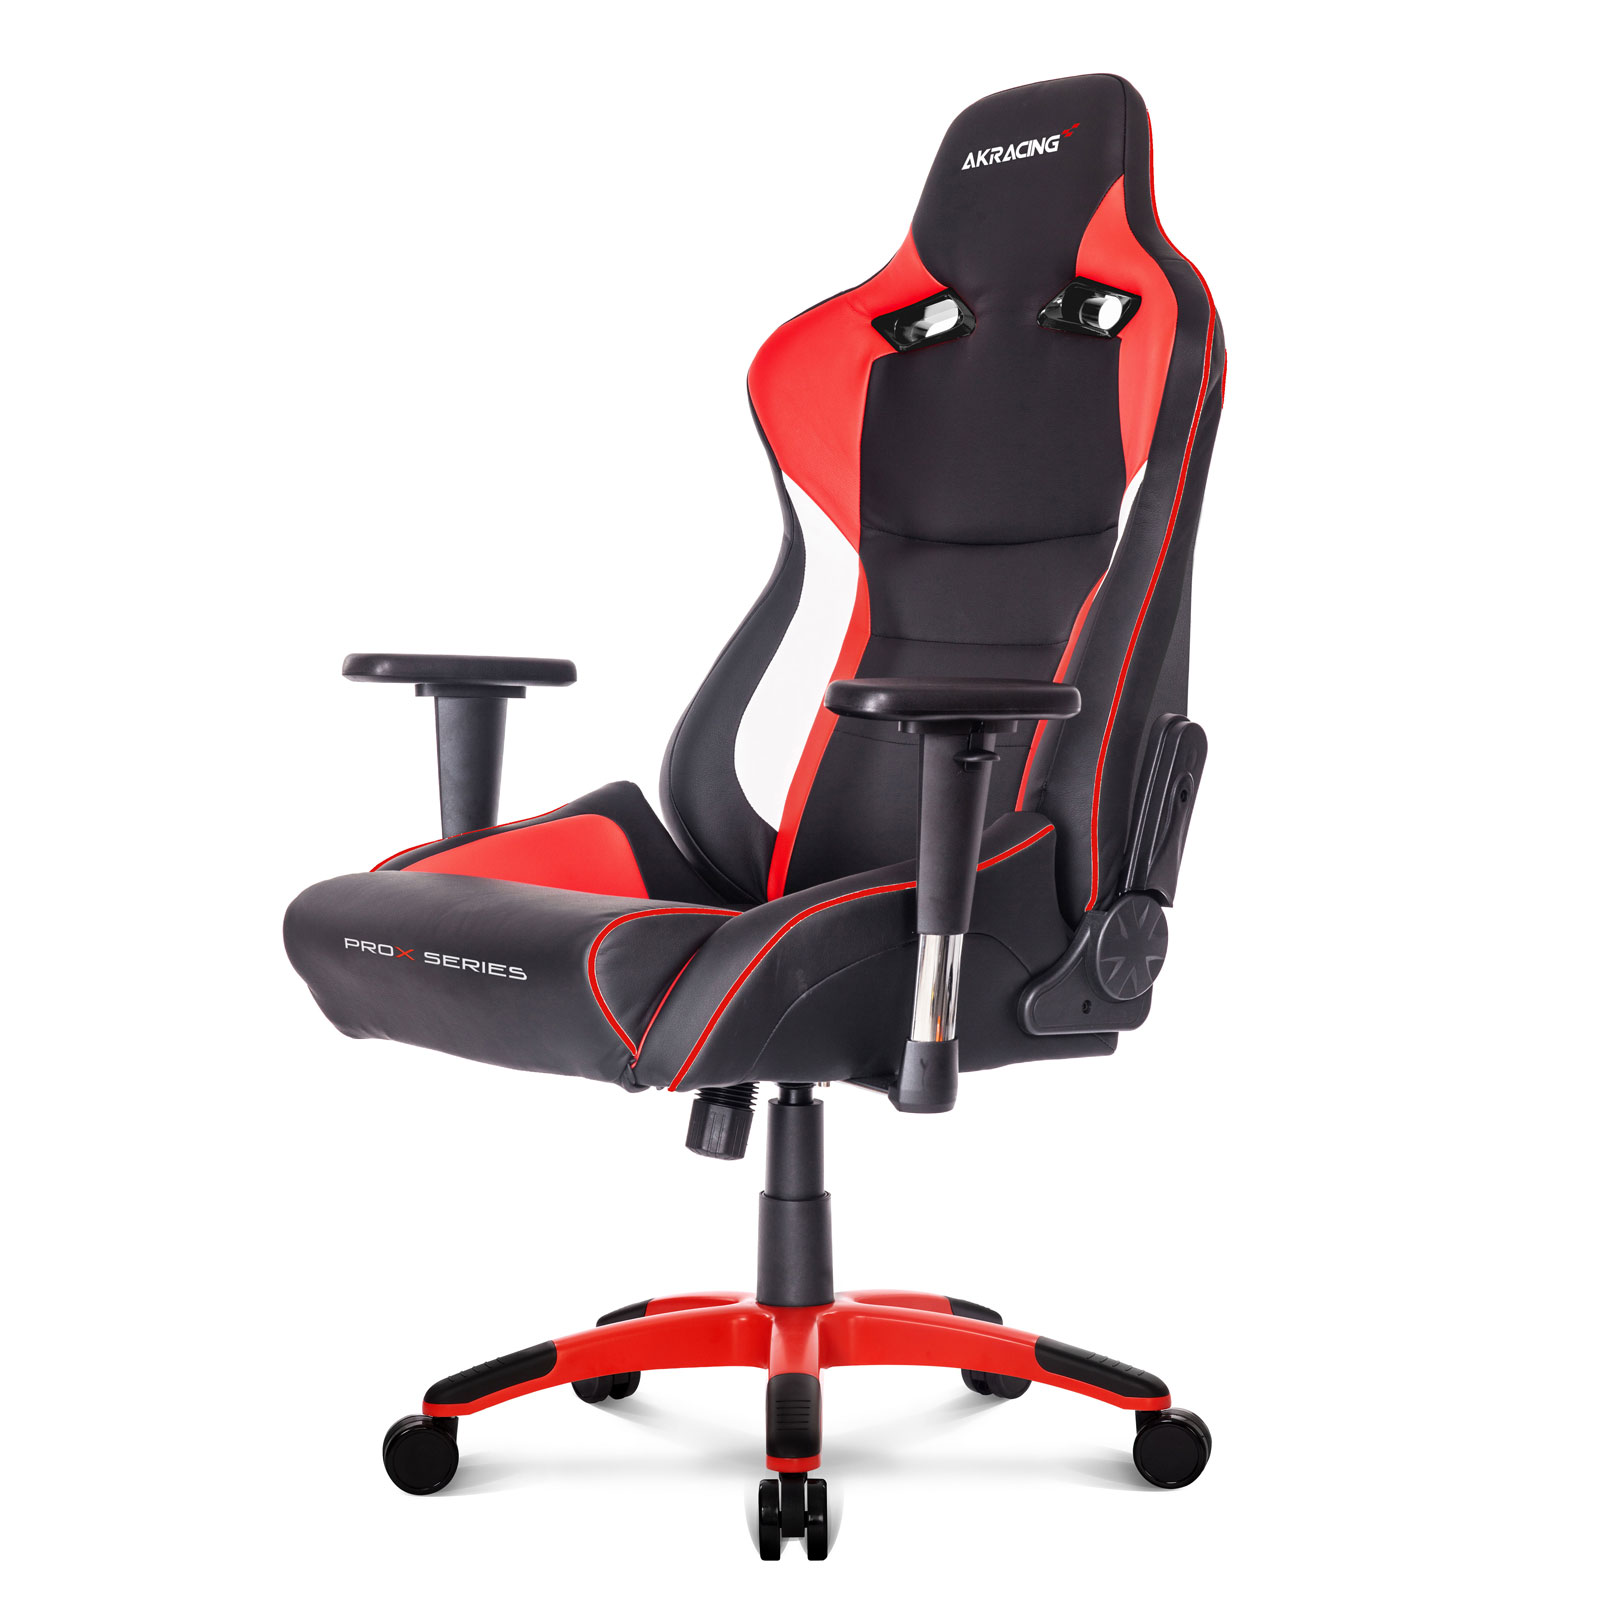 Chaise Dactylo Bleu Fauteuil Pro Gamer Chaise Dactylo Pas Cher Generationgamer